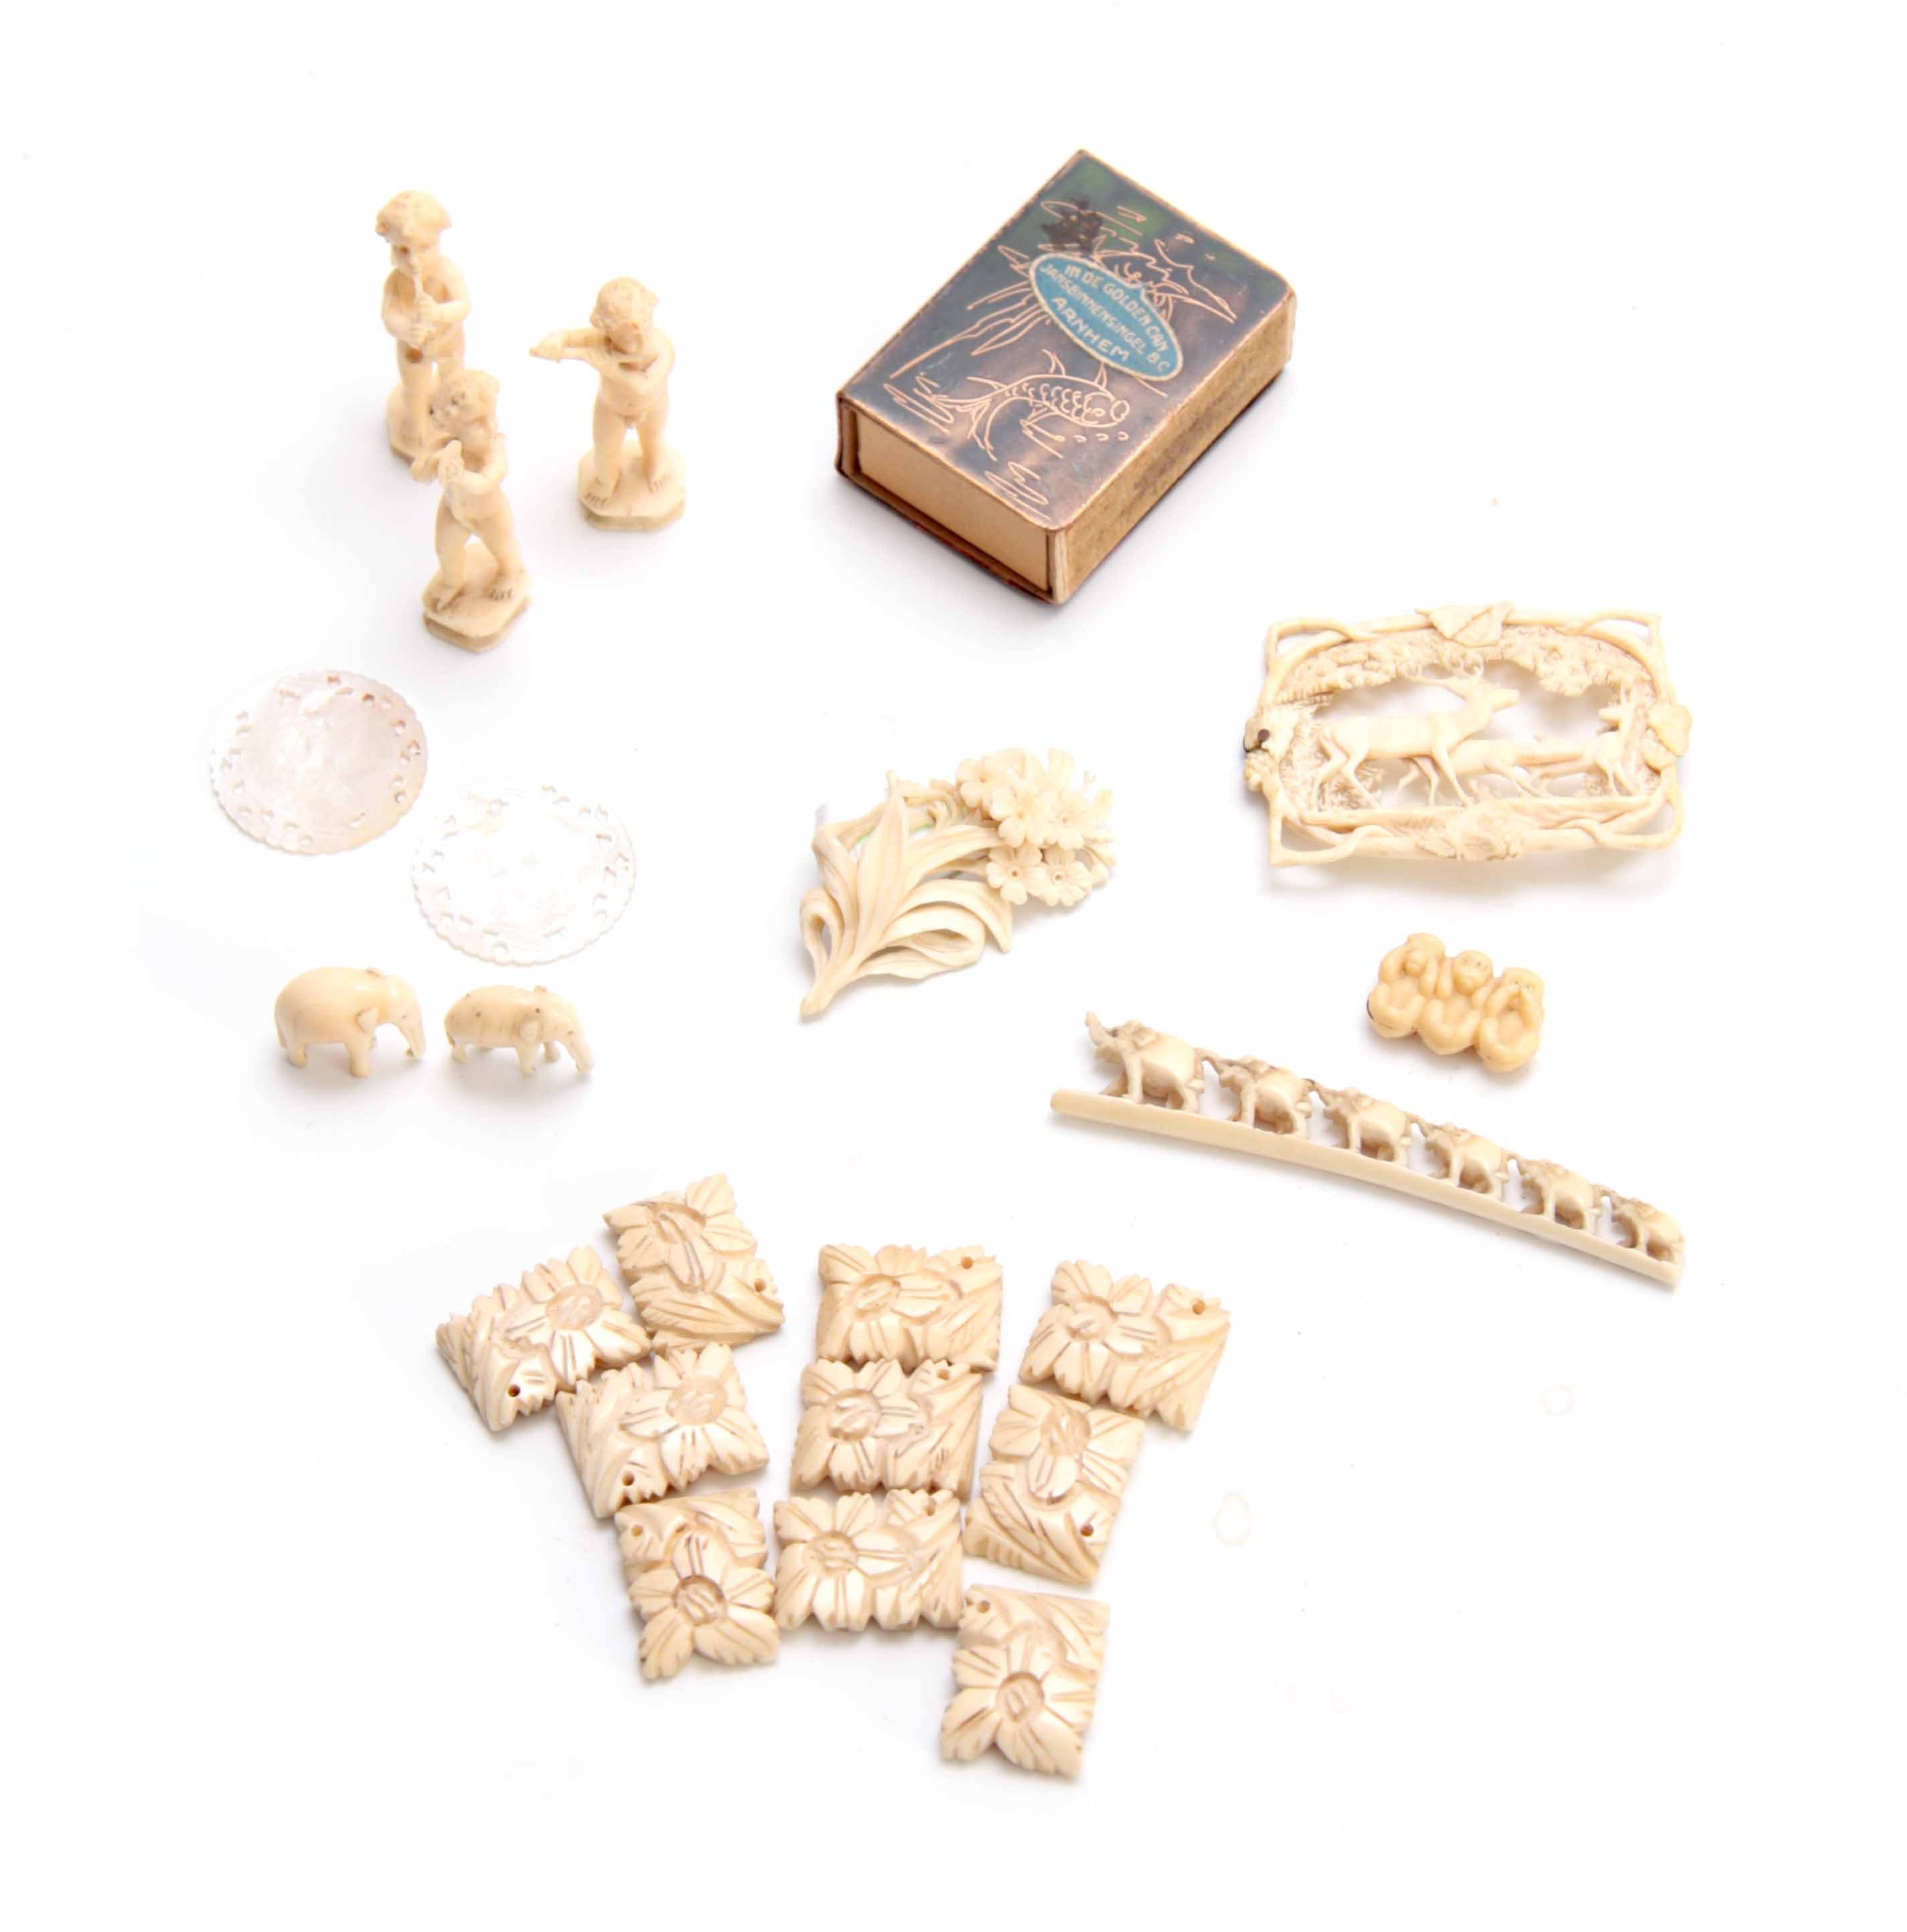 Lot 178 - A COLLECTION OF 19TH CENTURY CARVED MINIATURE IVORY PIECES including a belt buckle, a floral